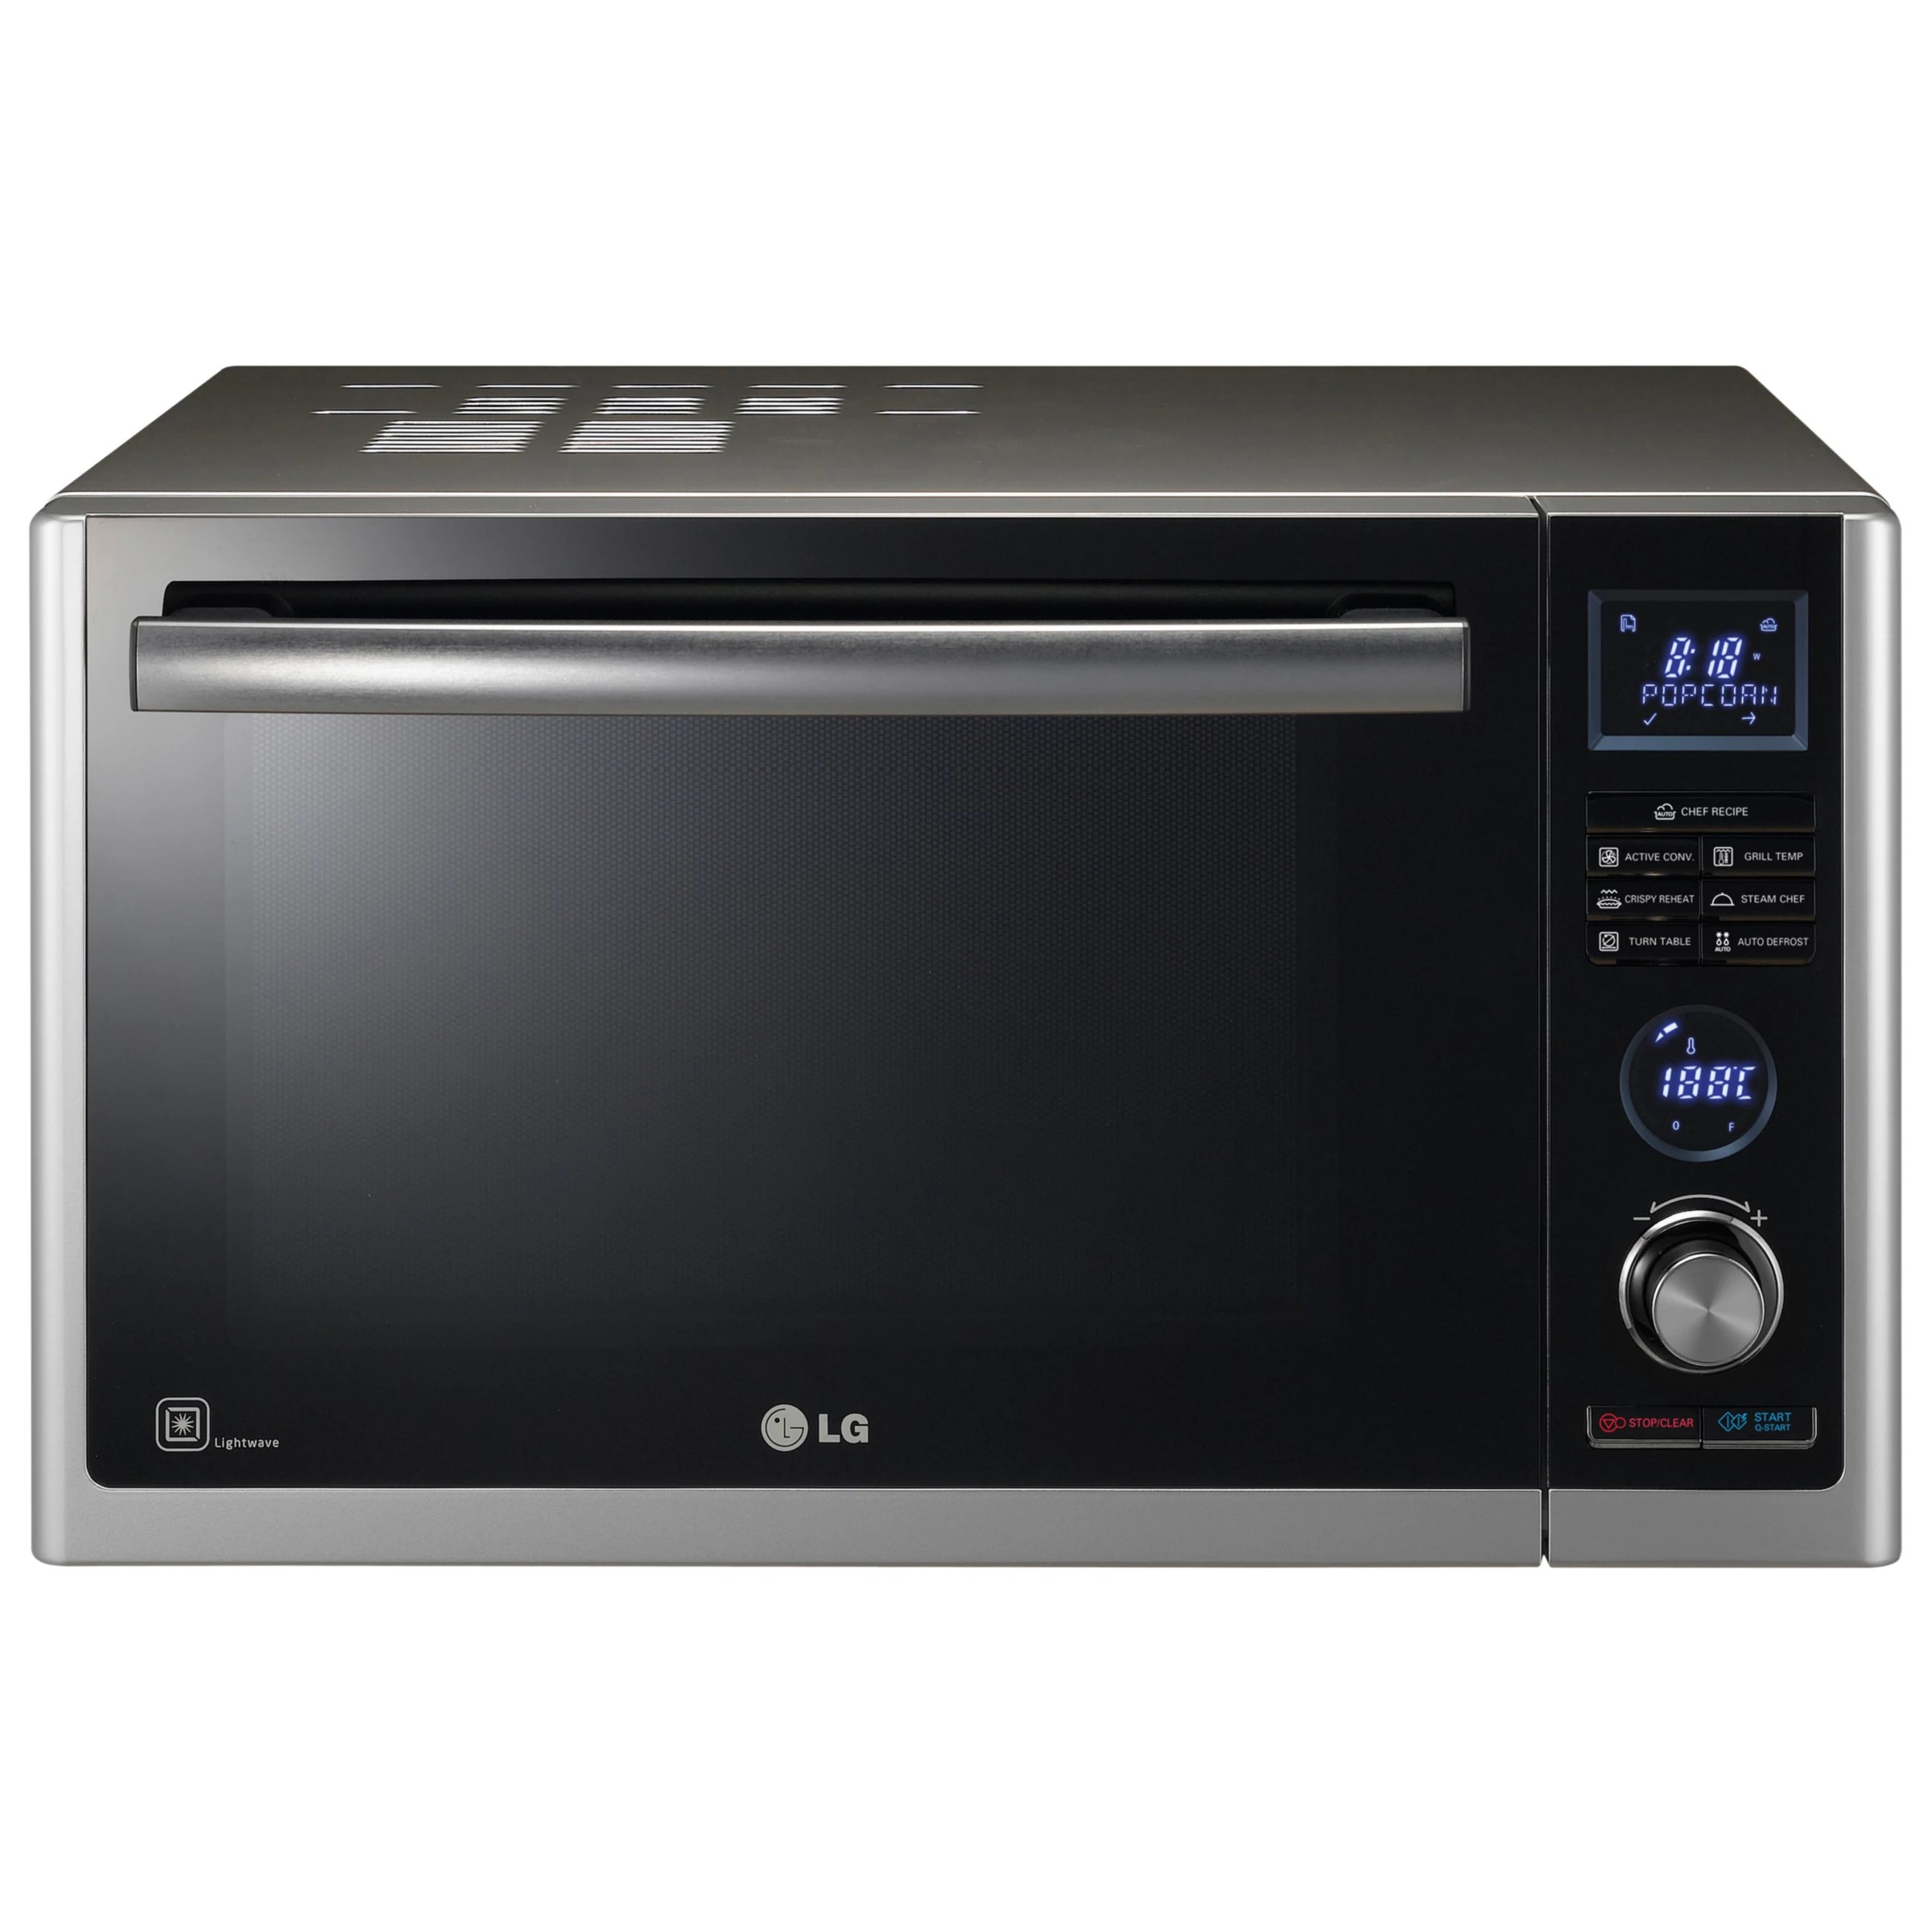 Combination Microwave Oven Lg Mj3281bcs Combination Microwave Convection Oven Black